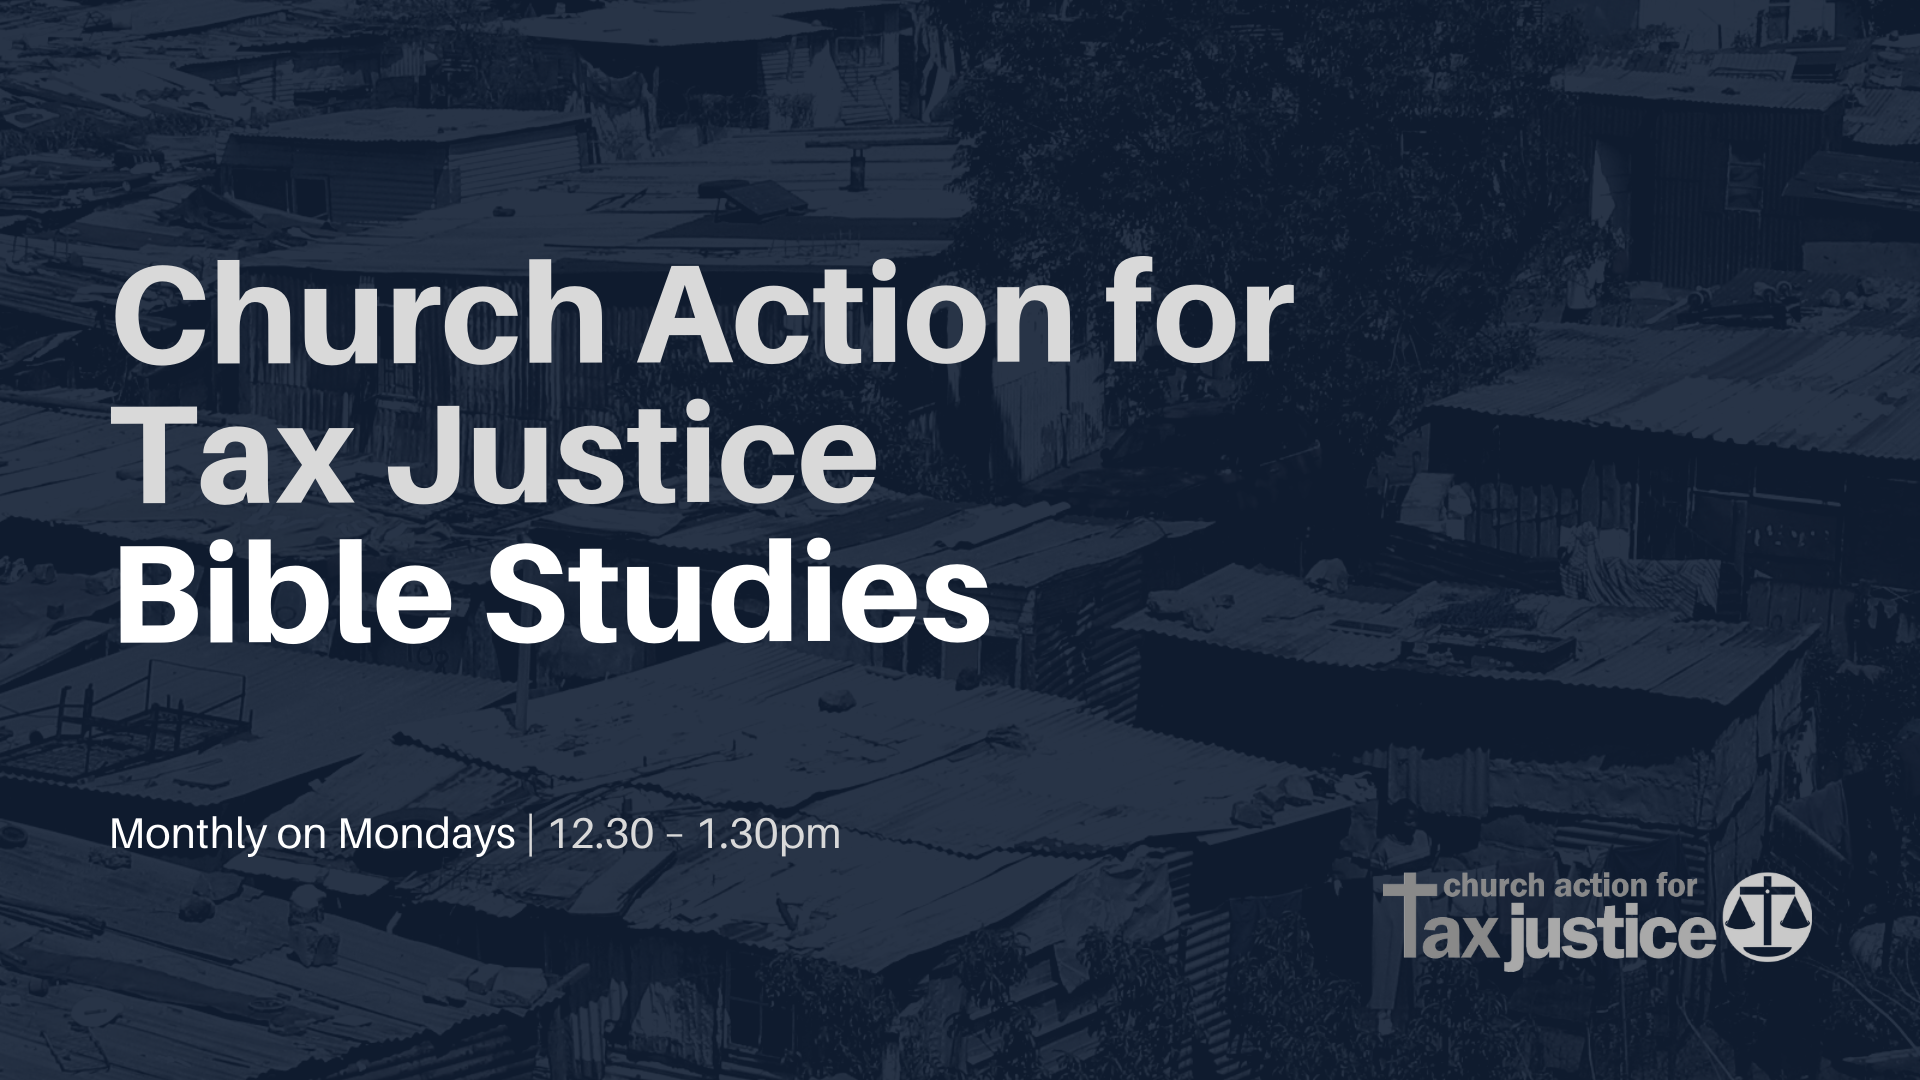 Church Action for Tax Justice | Bible Studies